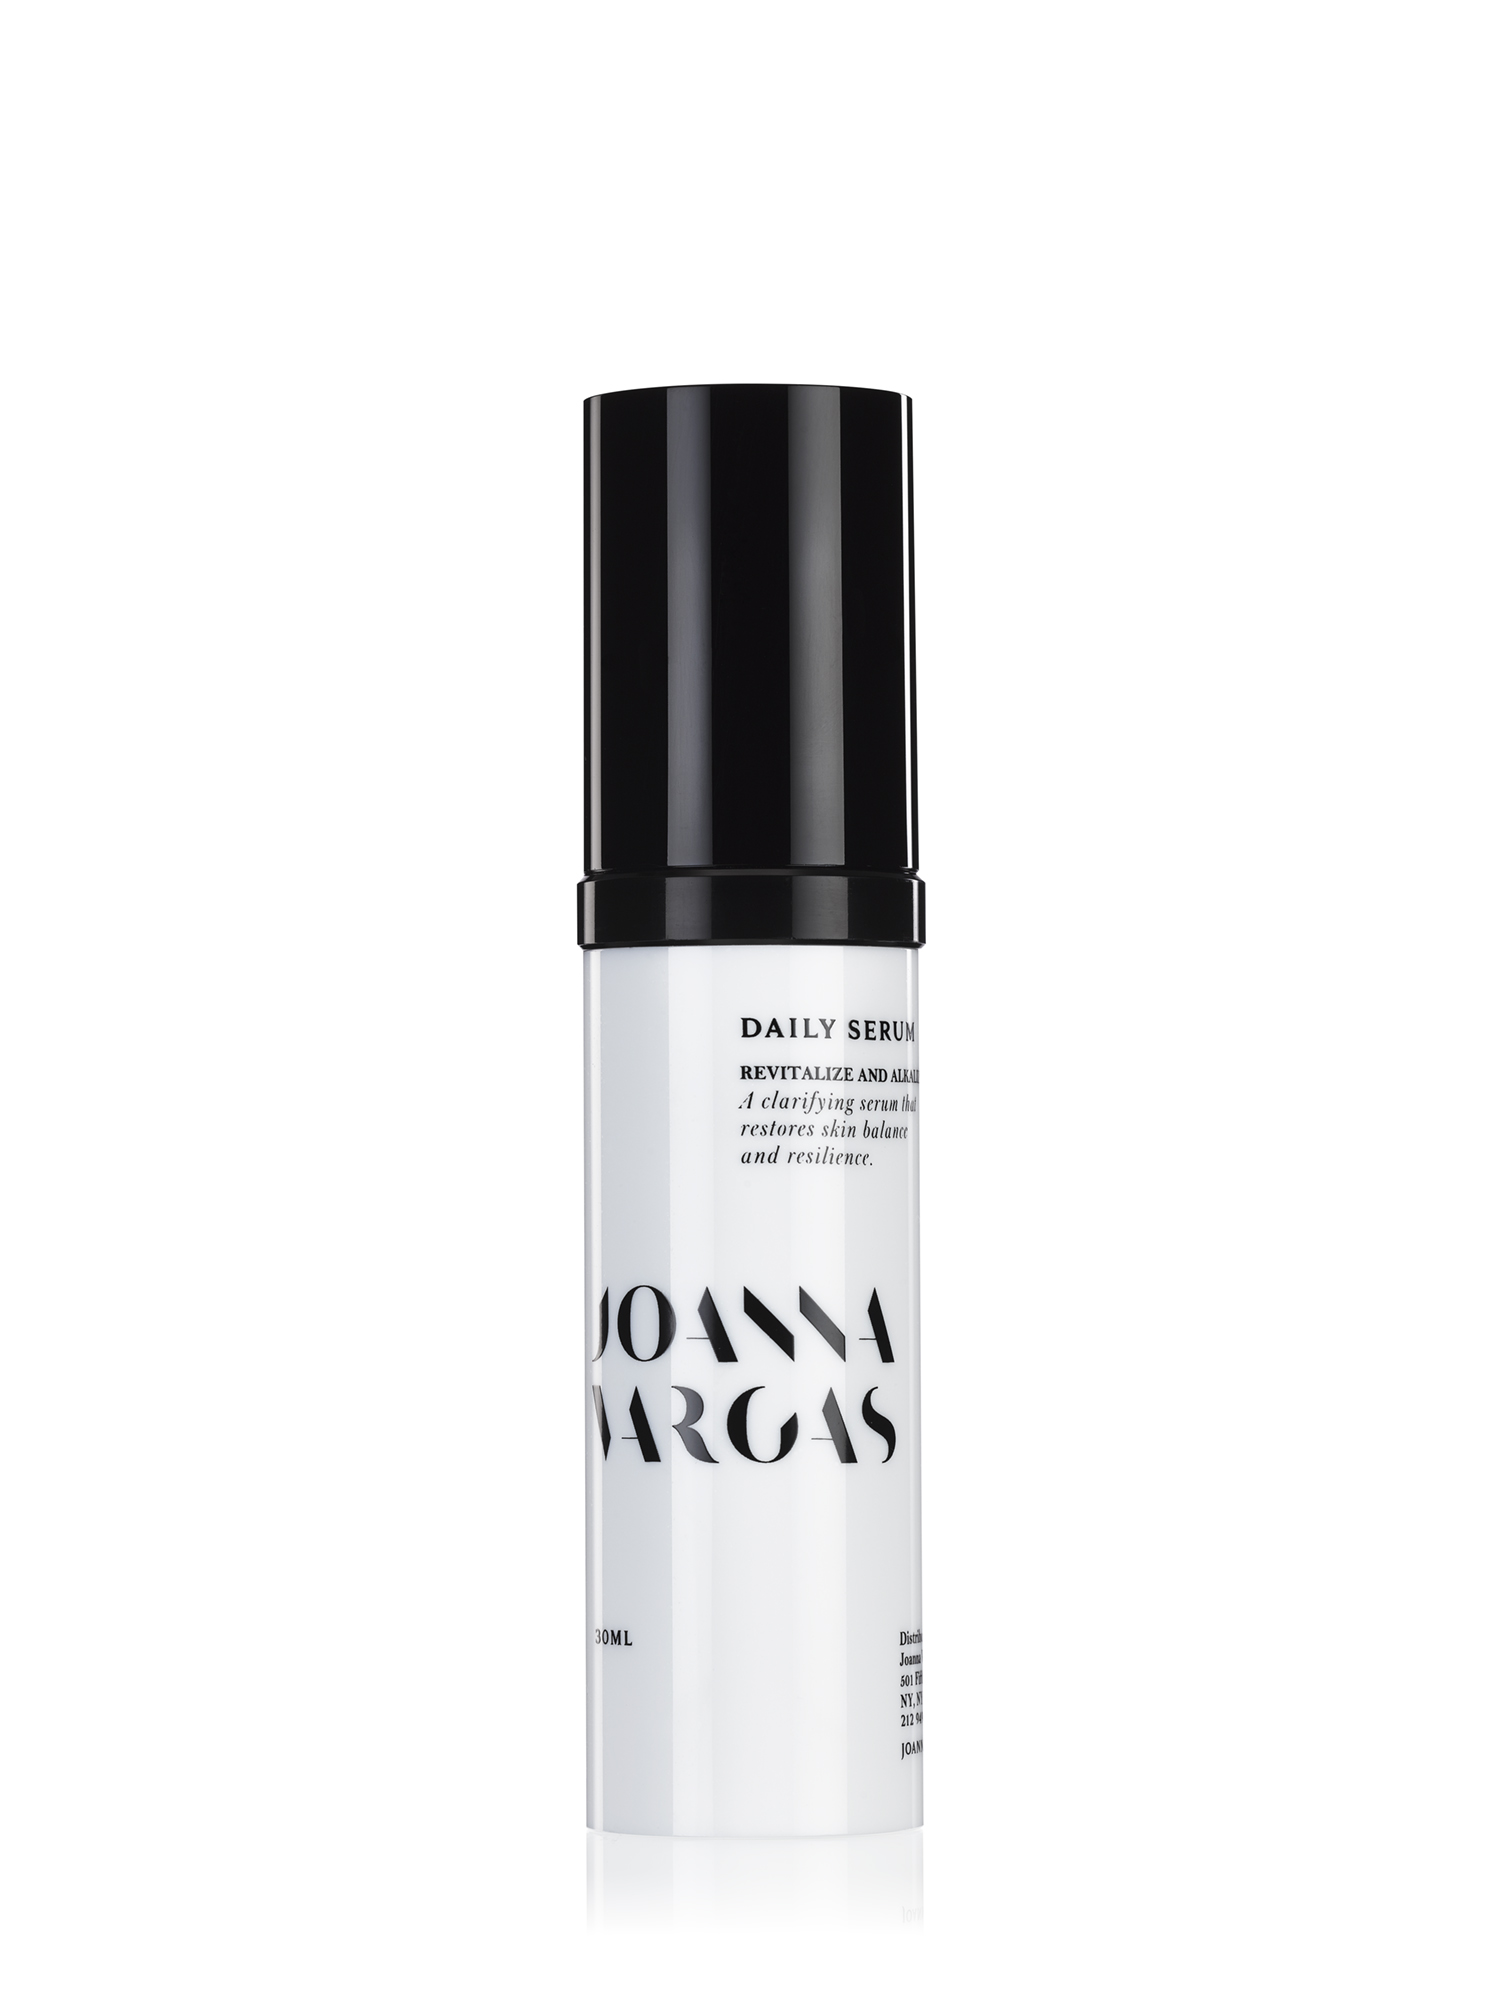 Joanna Vargas' Daily Serum